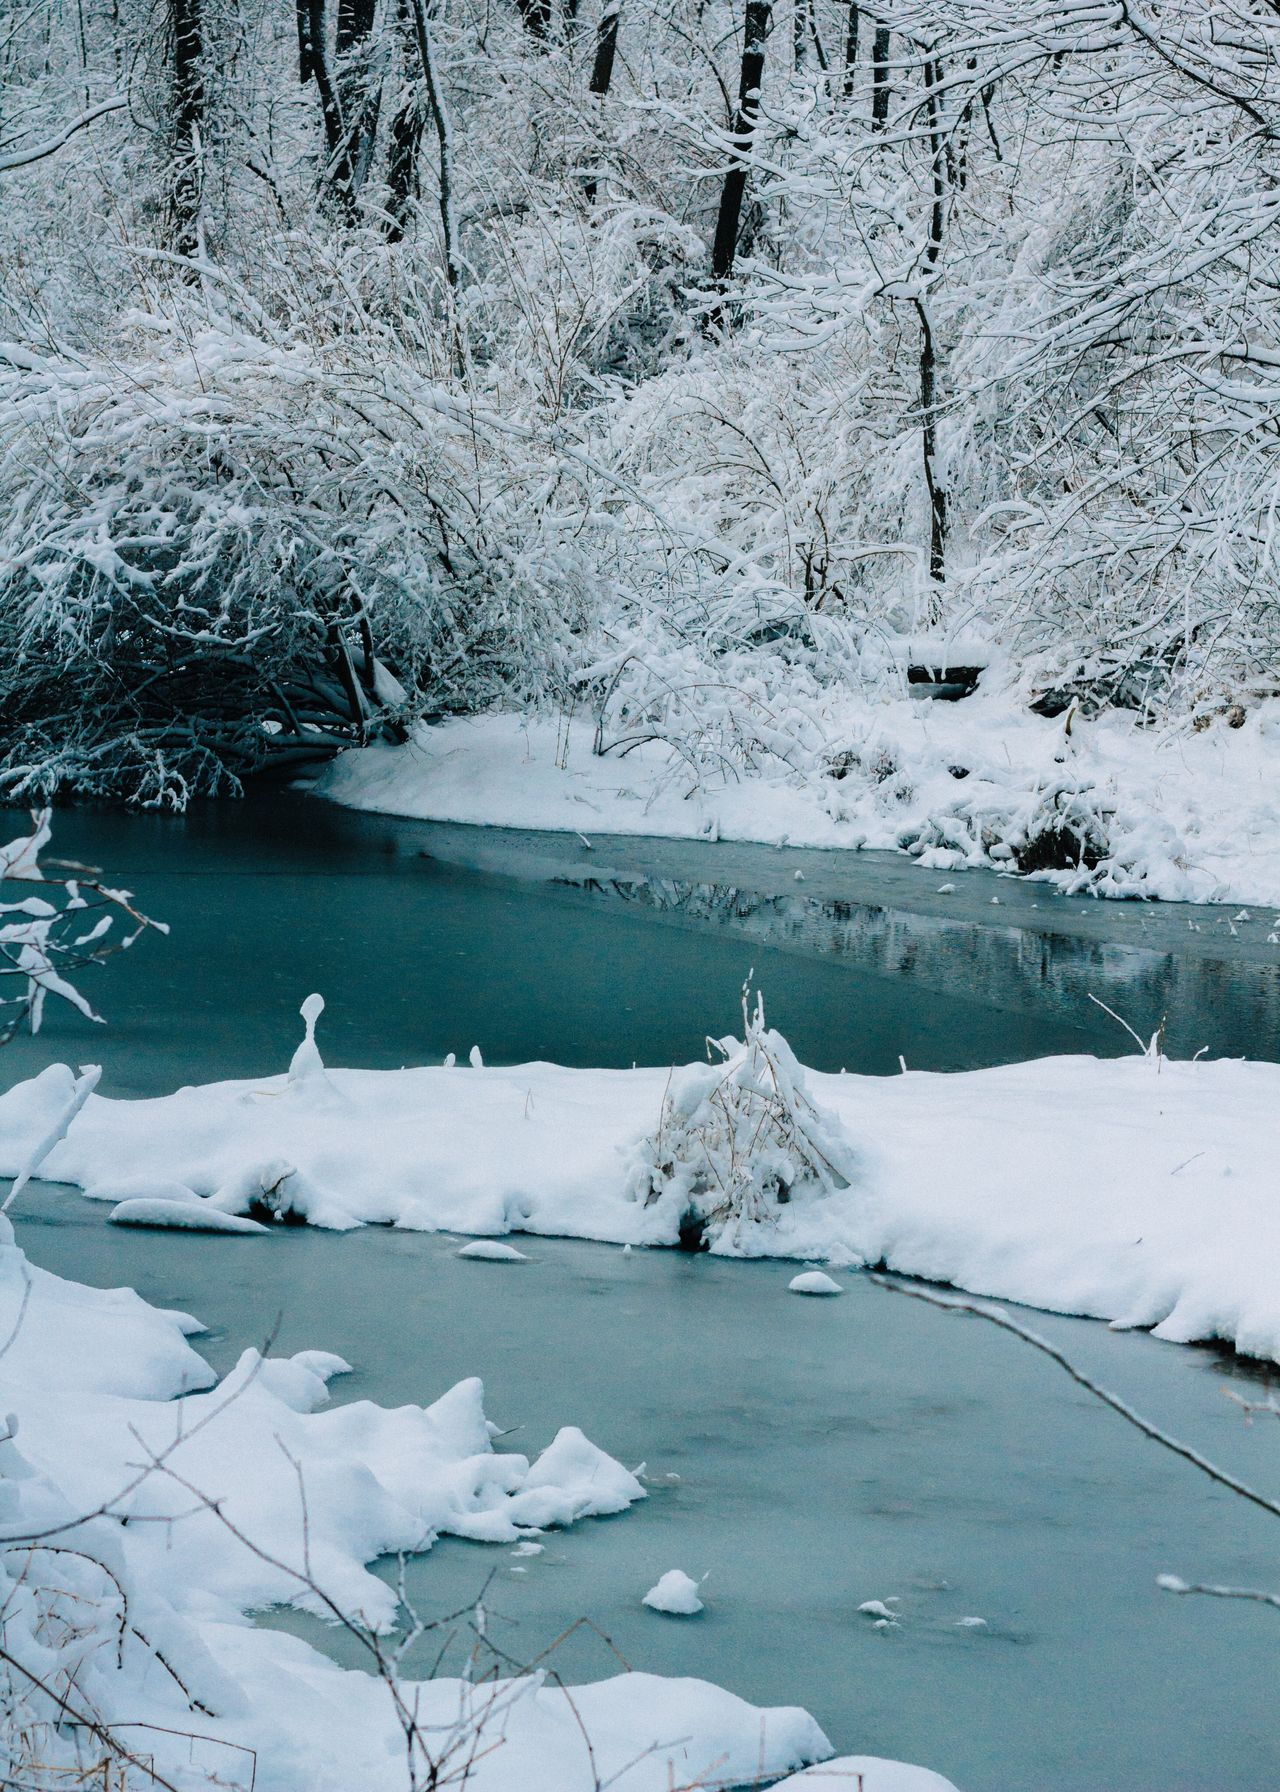 Cold Temperature Winter Snow Frozen Nature Ice Water Tranquility Melting Frost Beauty In Nature Lake Scenics Outdoors Day Global Warming No People Tree Frozen Lake Glacier